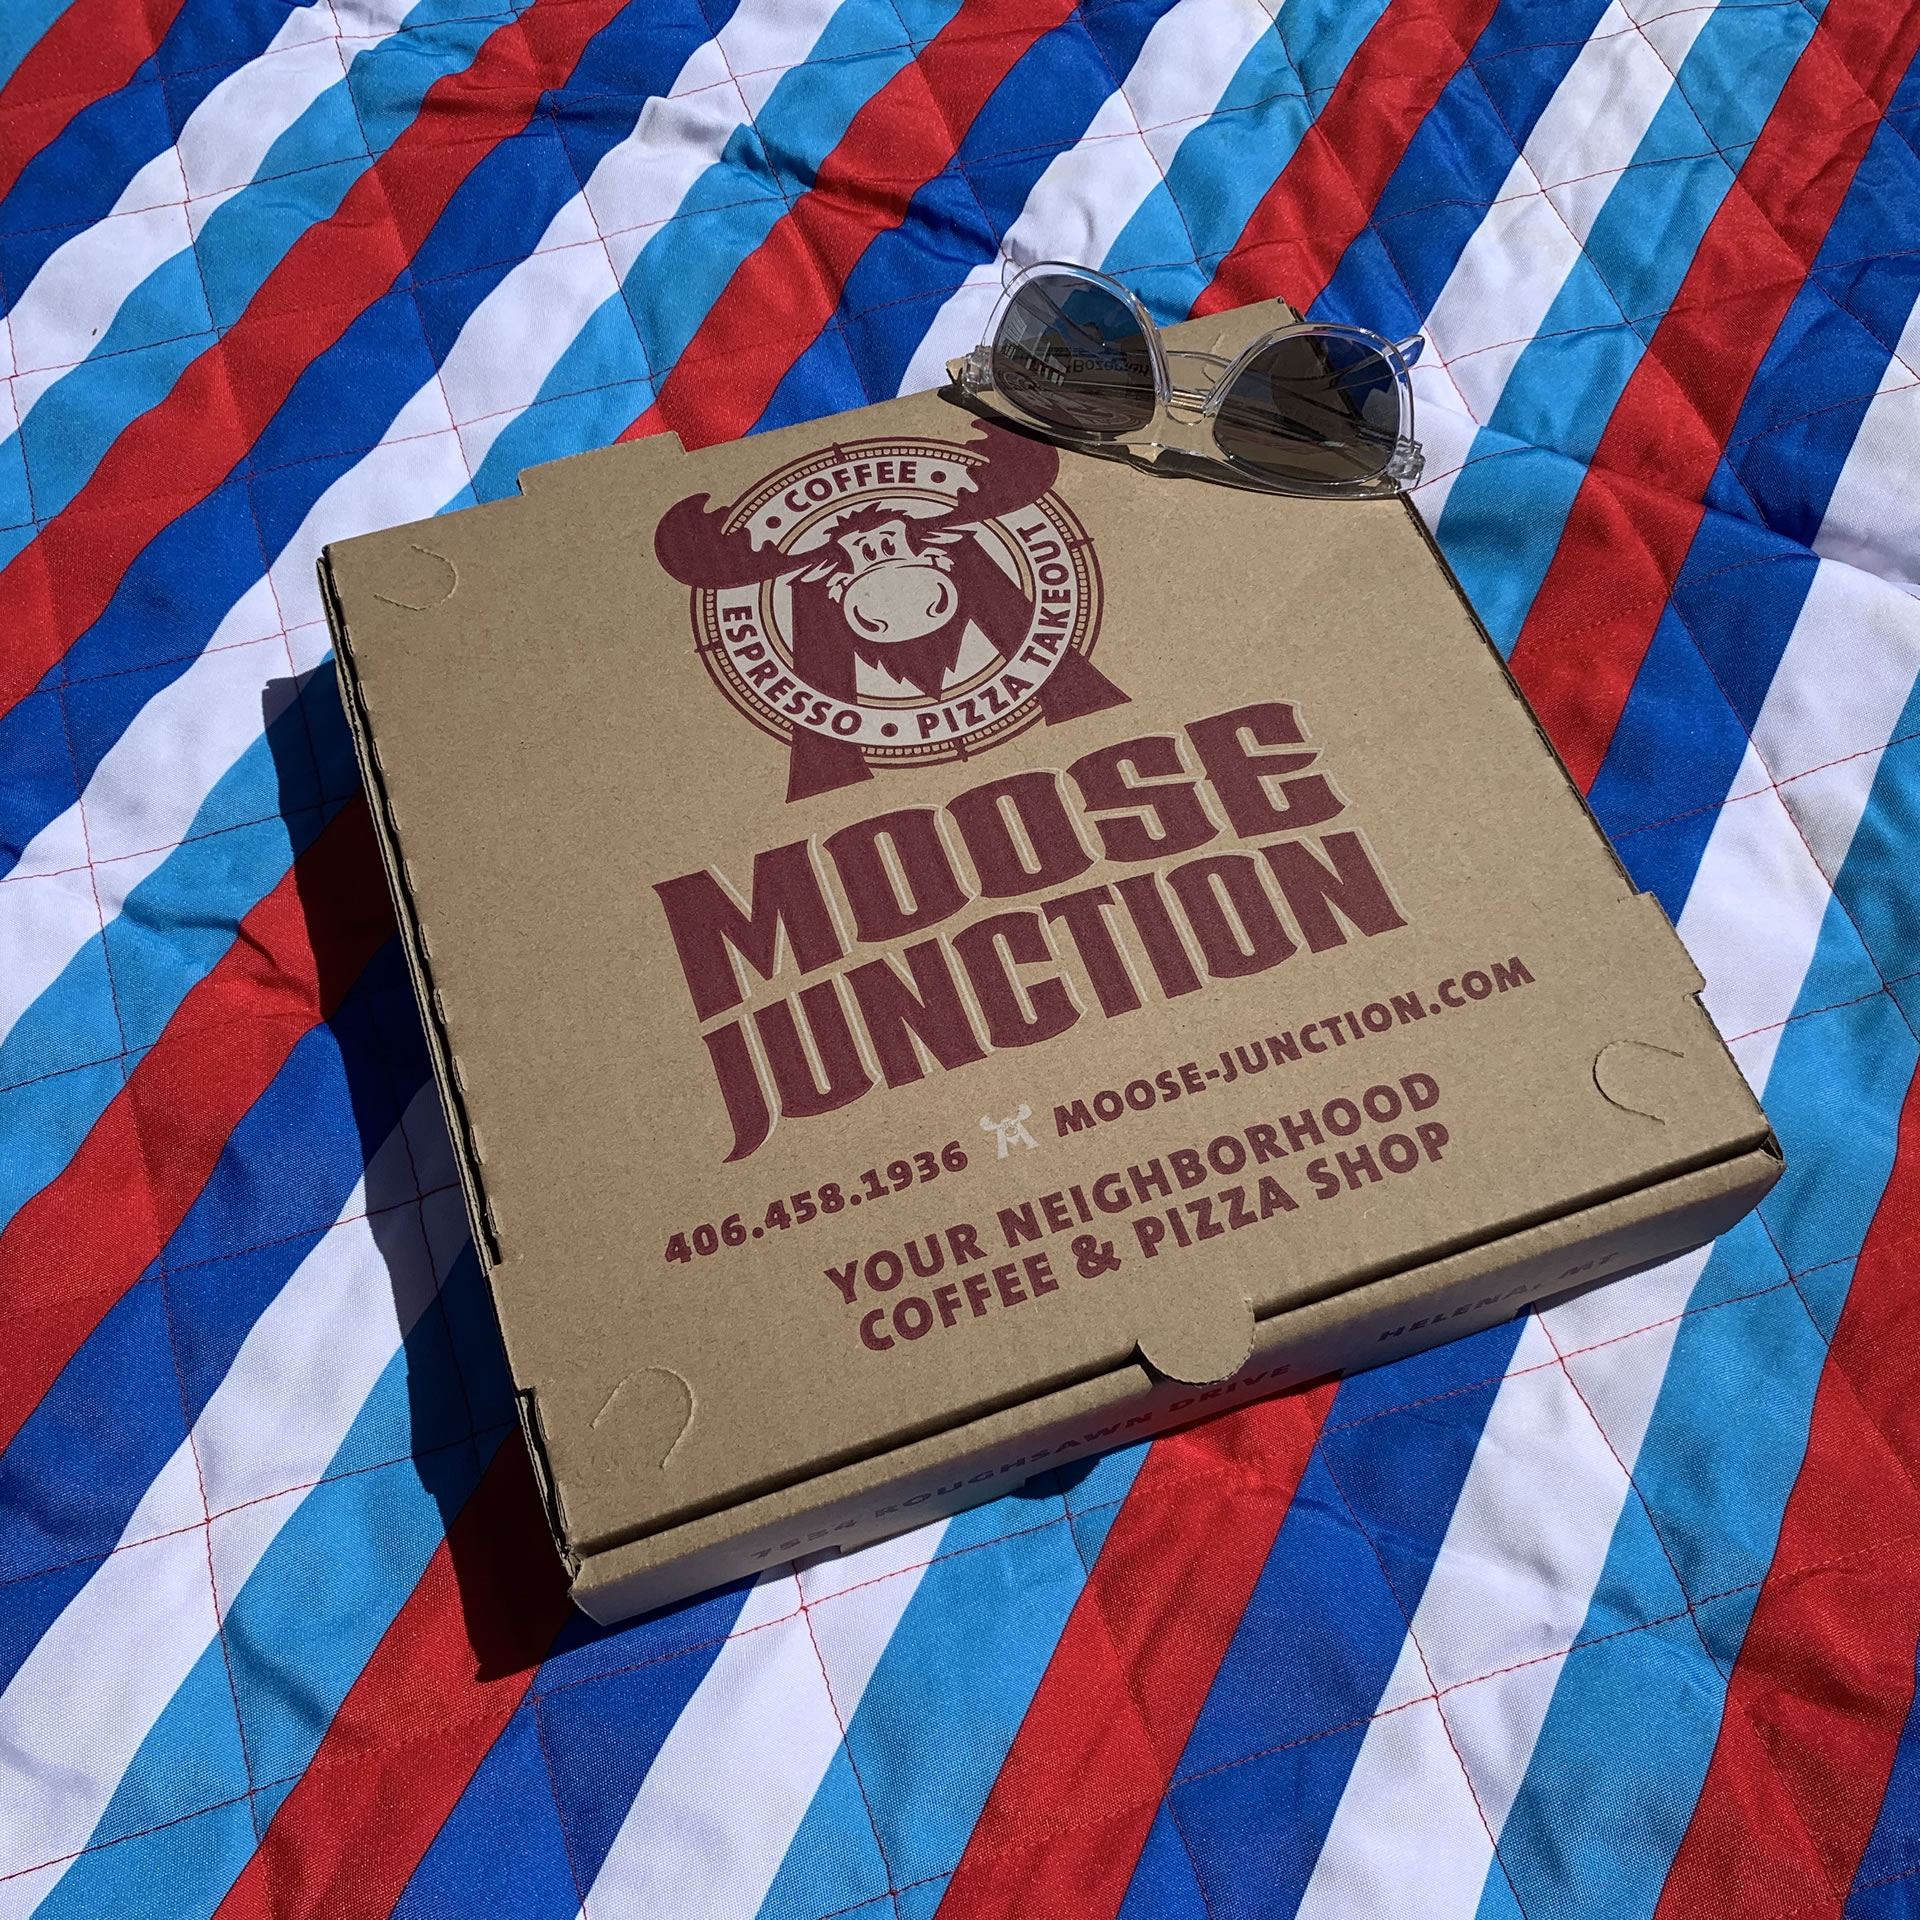 Moose Junction Pizza Box